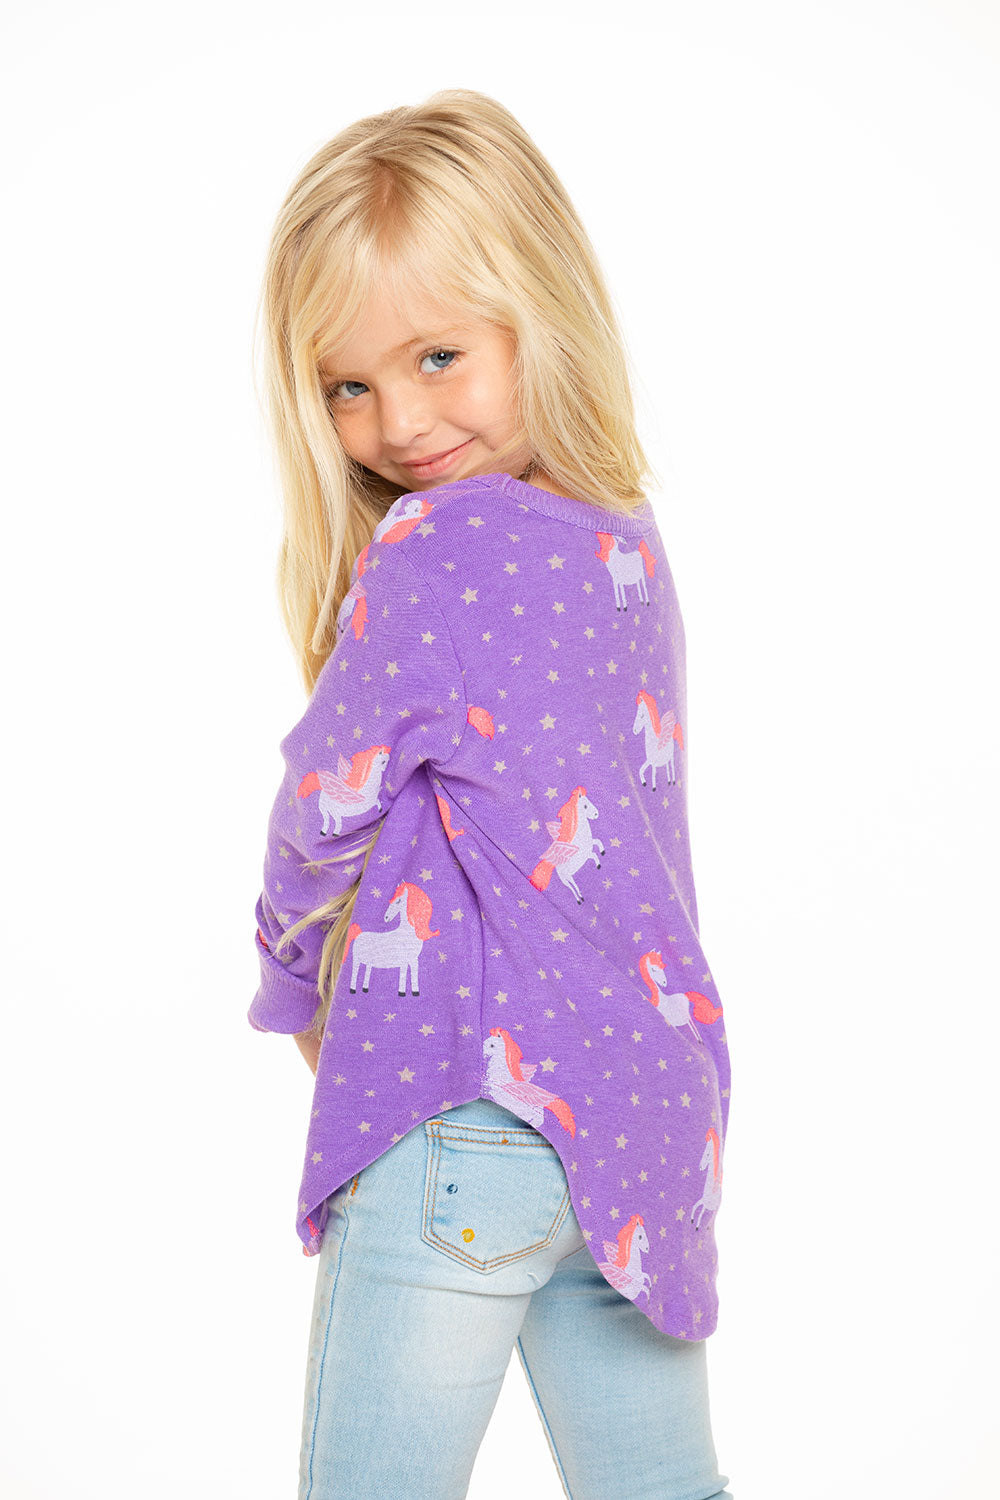 Unicorn Dream Pullover Sweatshirt GIRLS chaserbrand4.myshopify.com